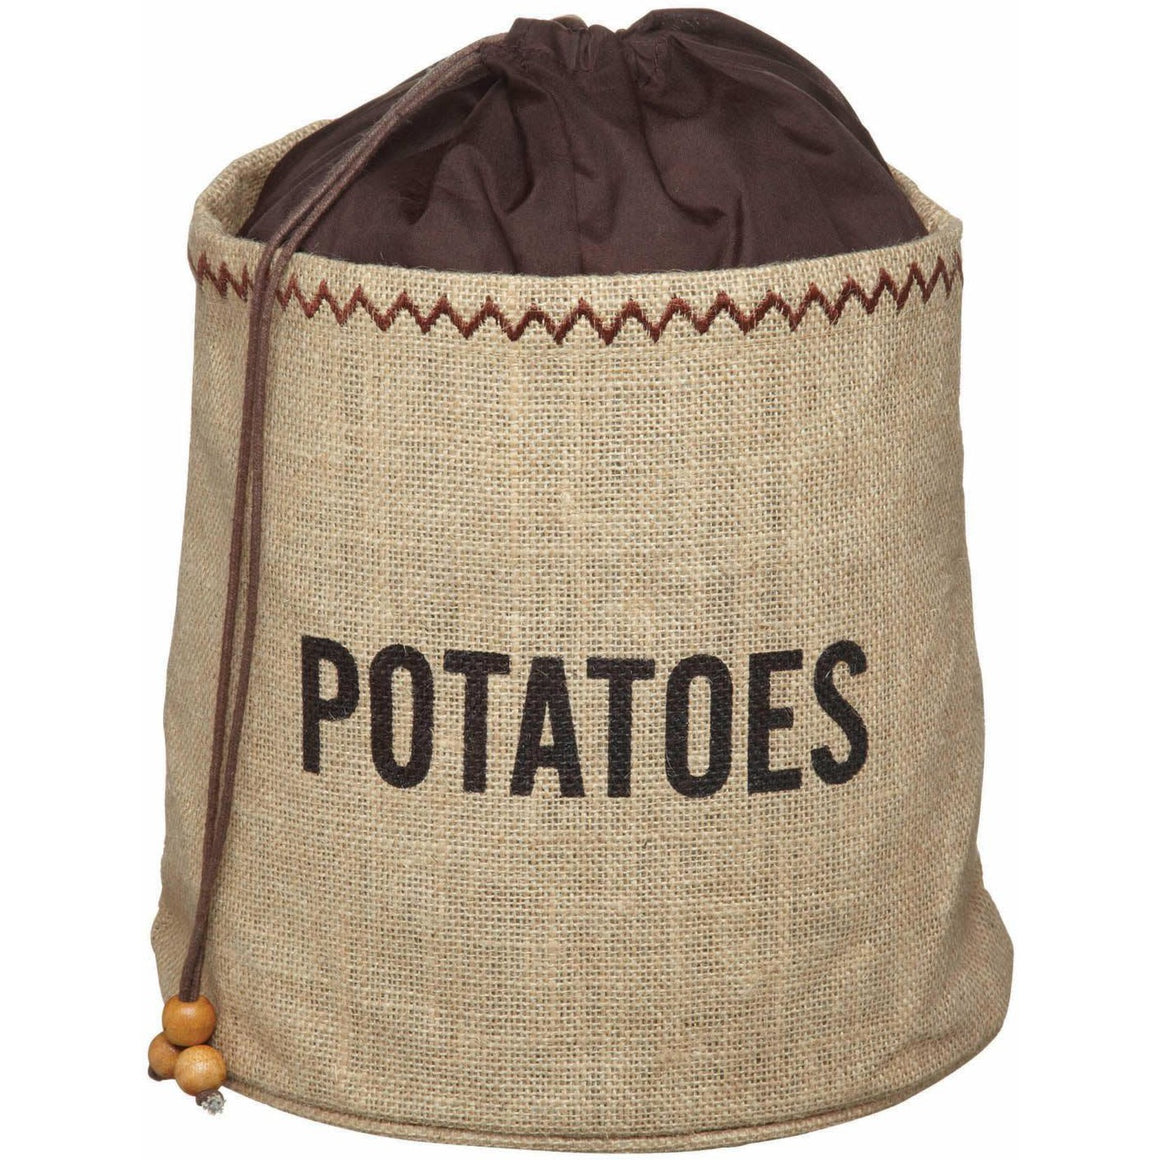 KitchenCraft Potato Sack